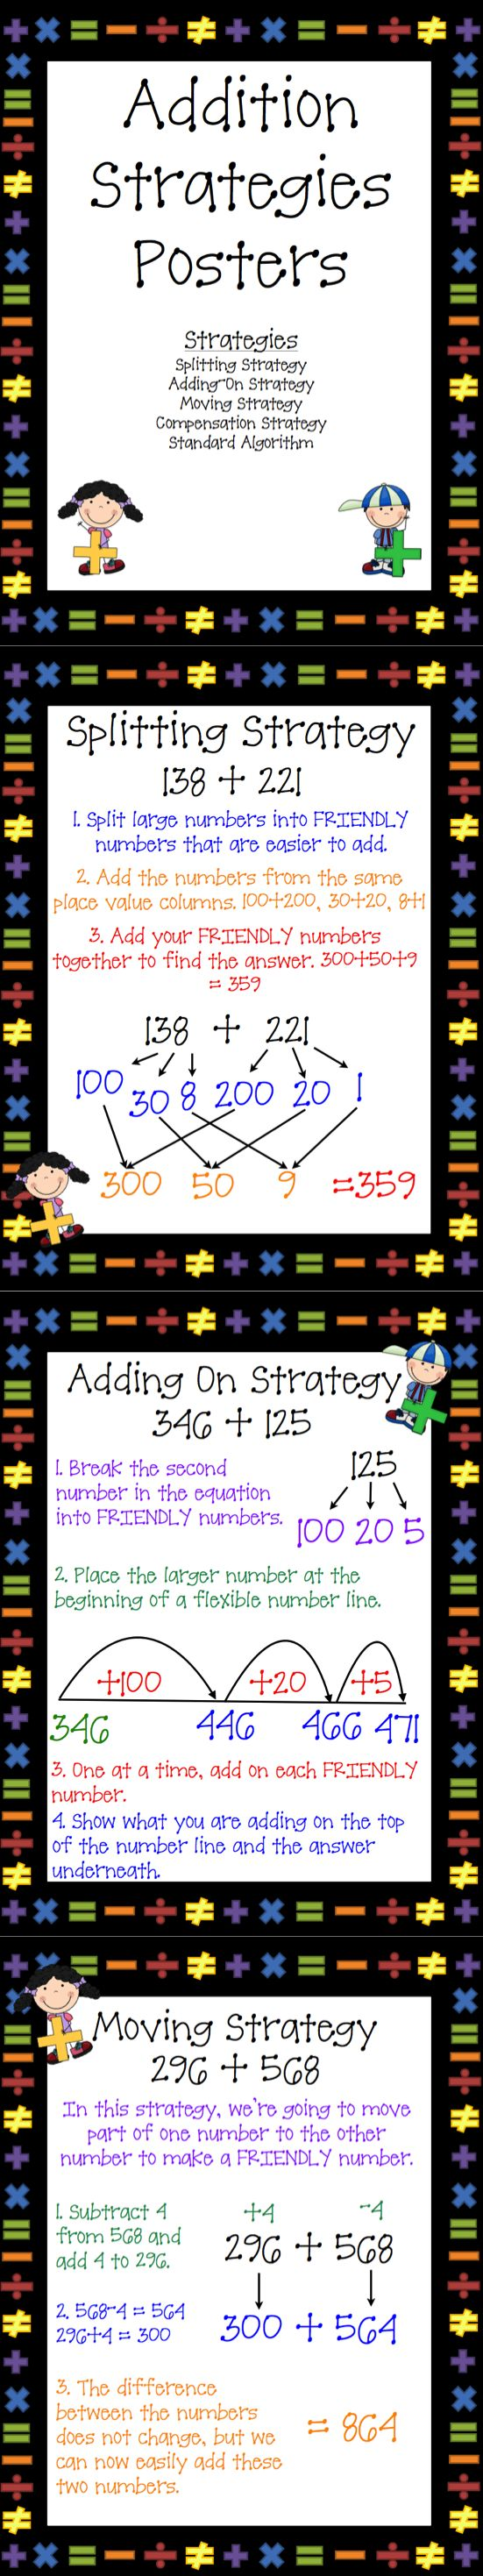 Use these 5 Step by Step Addition Strategies posters as Anchor Charts or notes for your students. Included in this set are: Splitting Strategy, Adding On Strategy, Moving Strategy, Compensation Strategy, and  Standard Algorithm